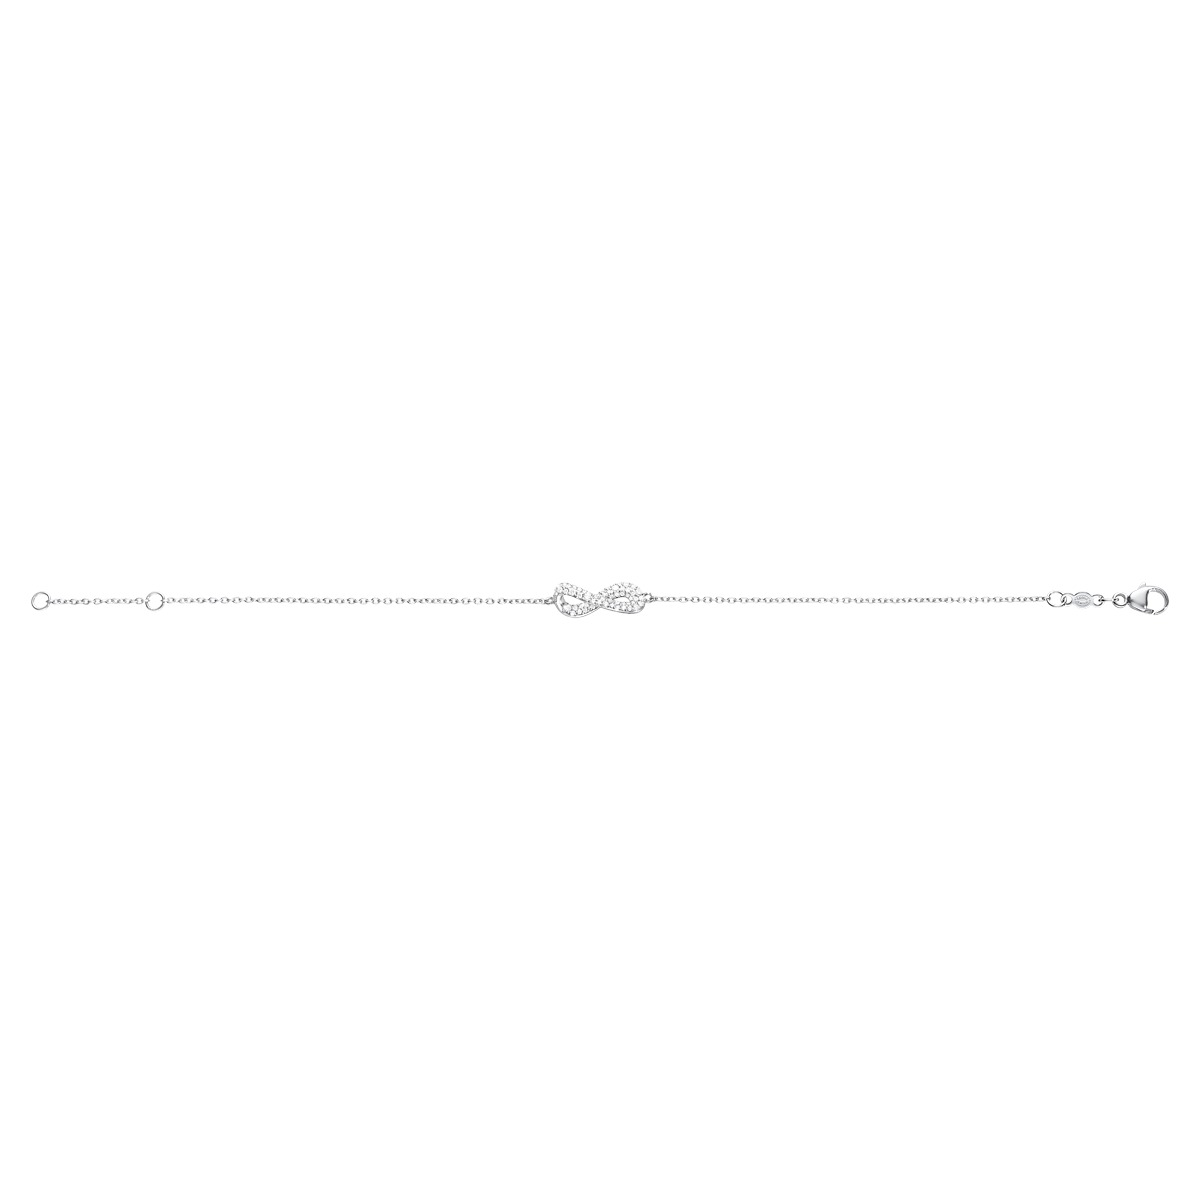 Image of Georg Jensen INFINITY armbånd - 3531194 18 centimeter